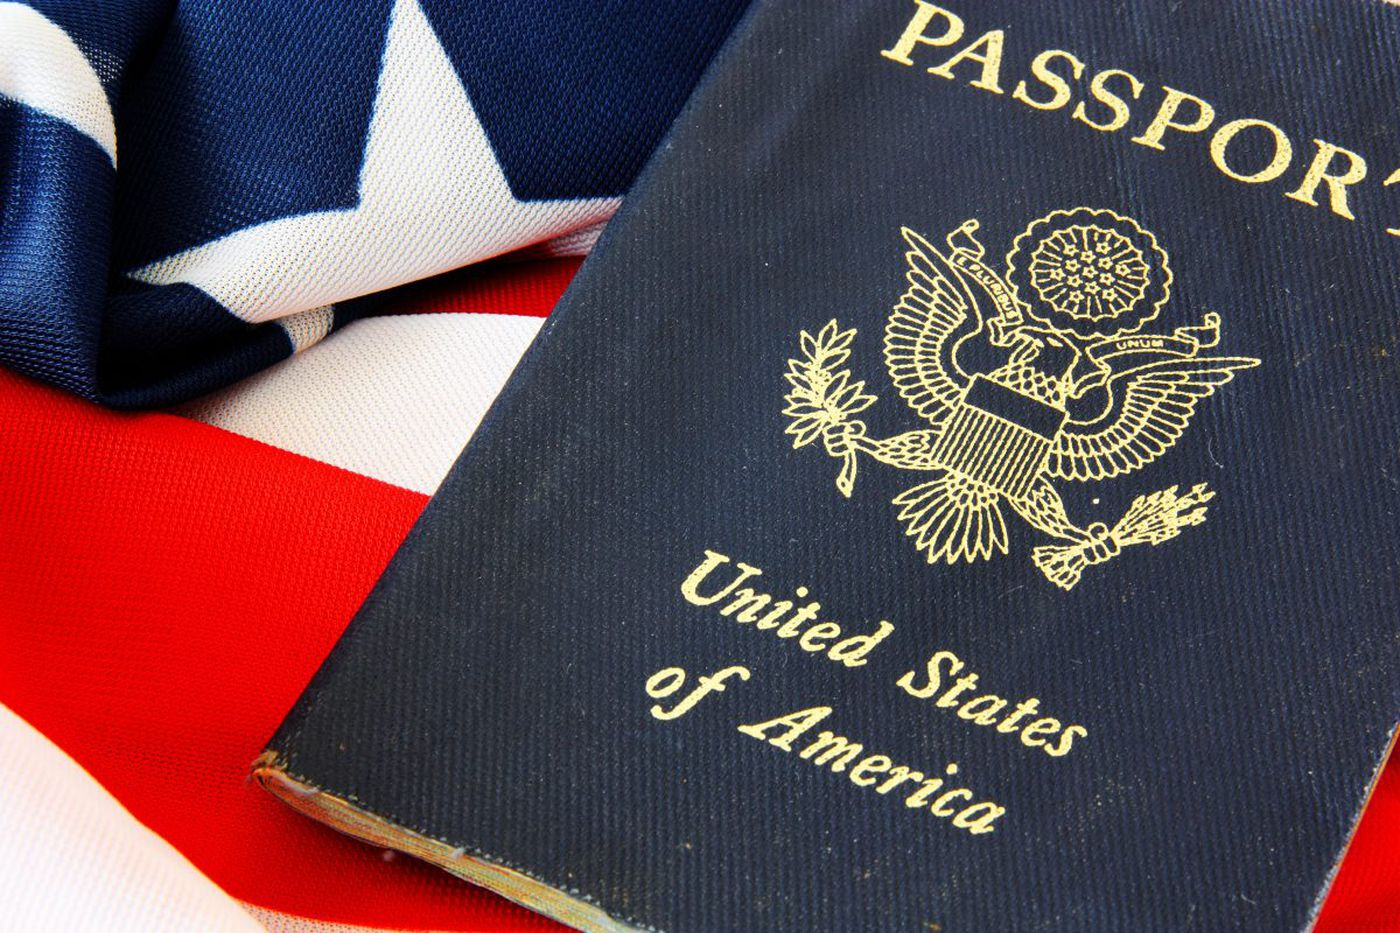 U.S. passport might cost you more on April 2